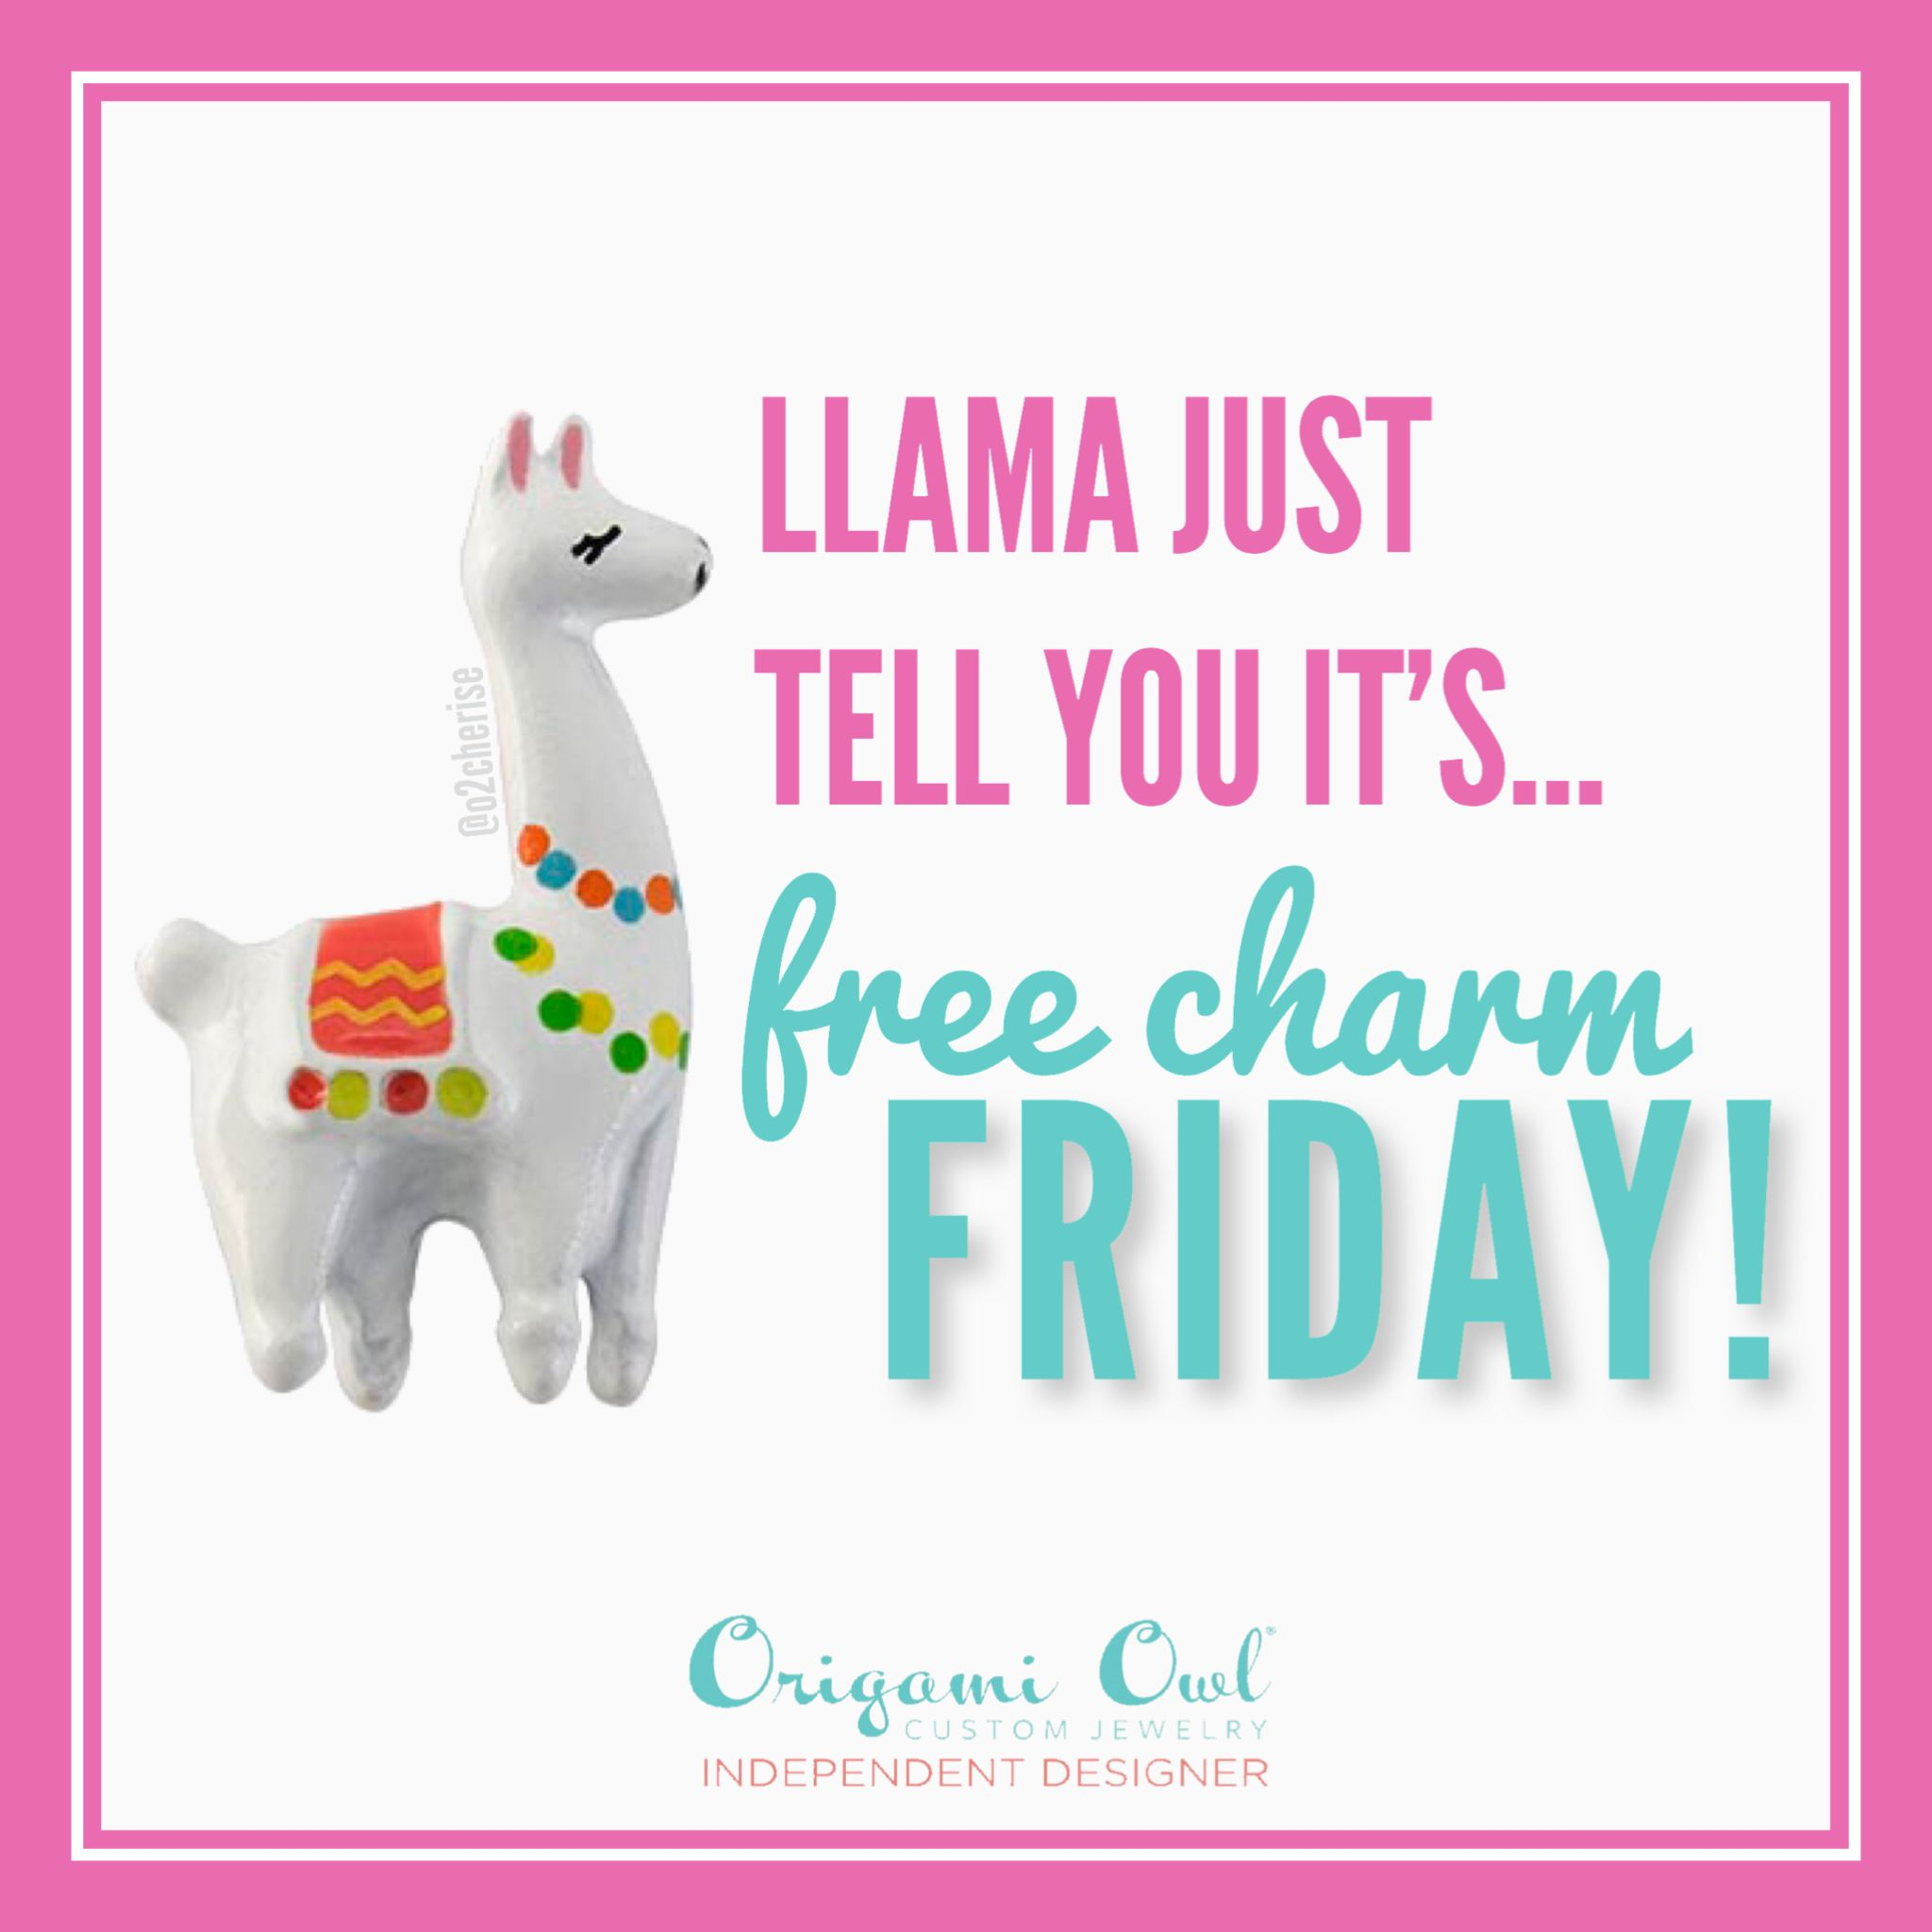 Free charm Friday origami owl graphic | Origami Owl in ... - photo#44